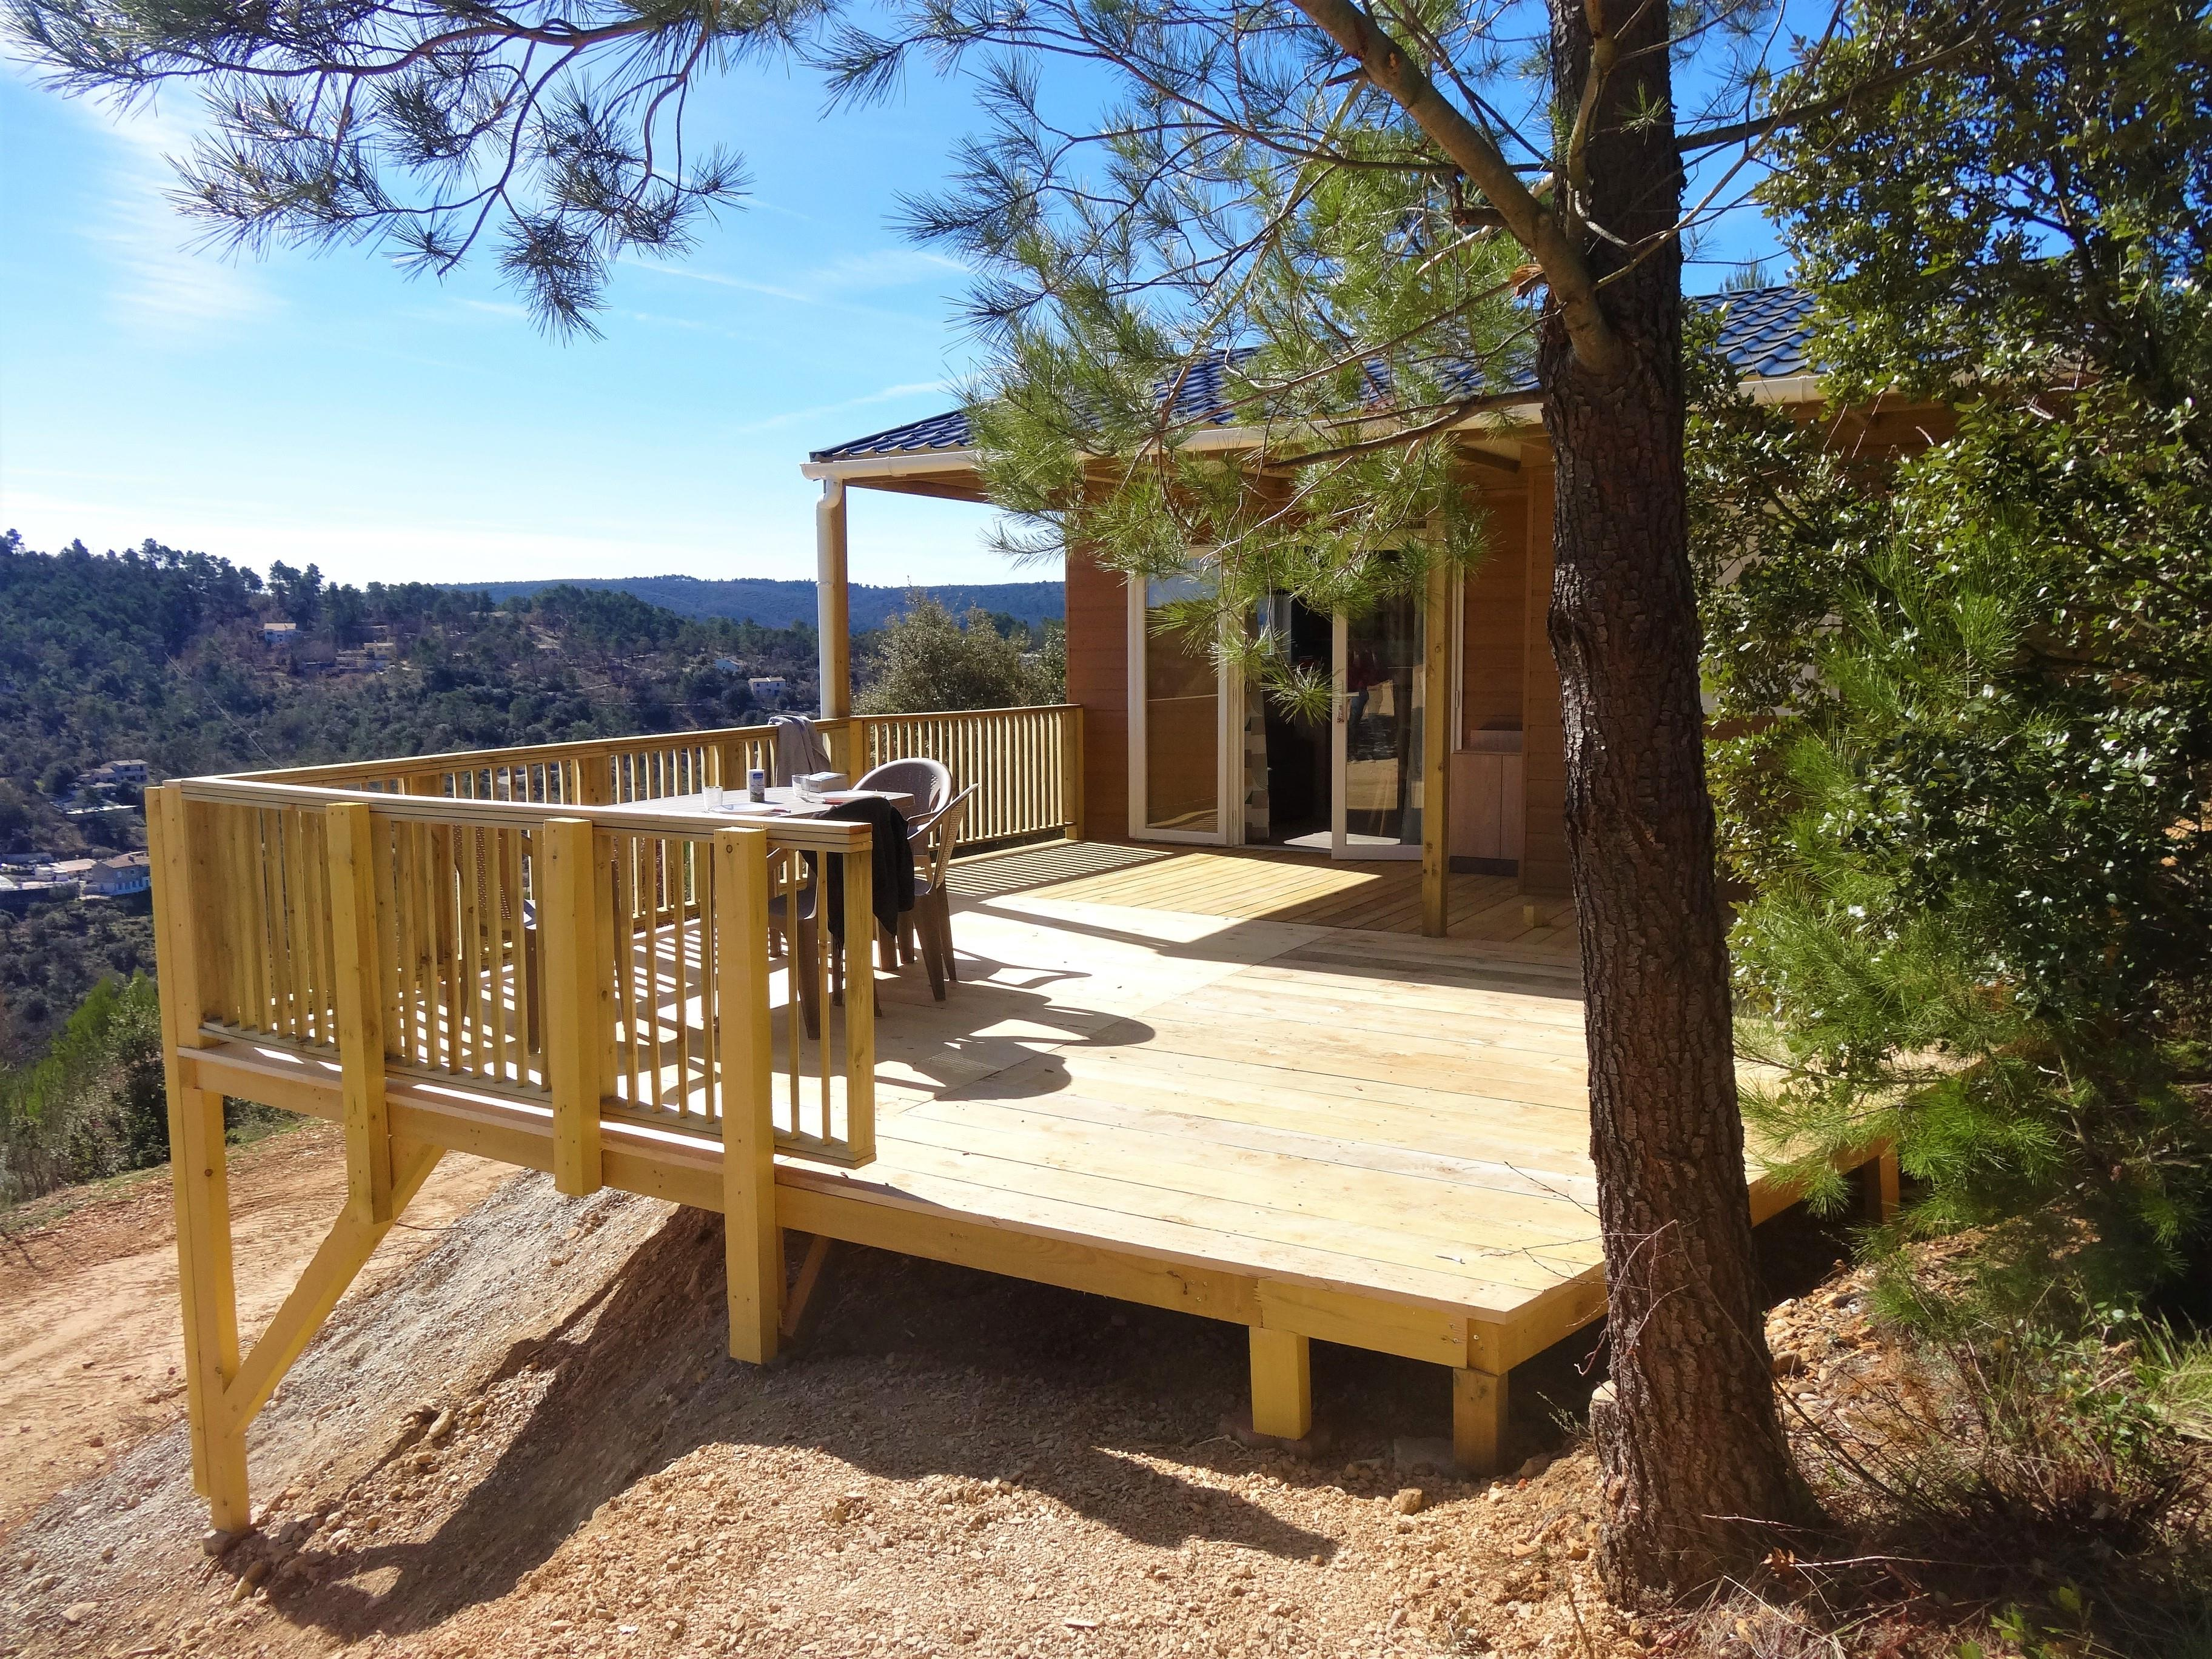 Alojamientos - Chalet 27M² - 2 Rooms - View On The Valley - Camping naturiste Verdon Provence